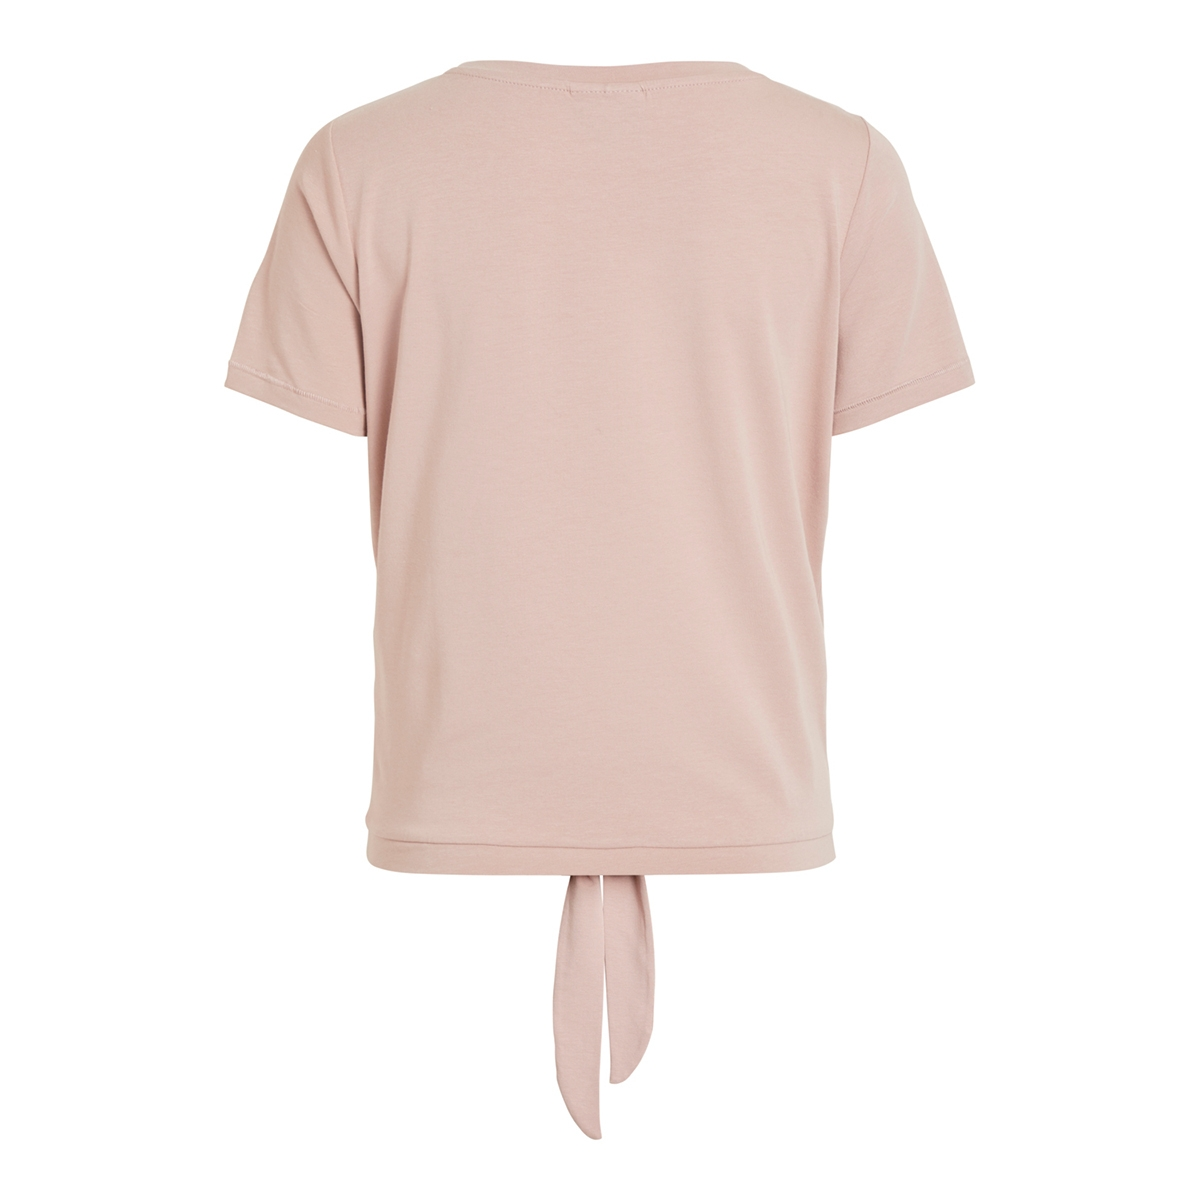 objstephanie maxwell s/s top noos 23029269 object t-shirt adobe rose